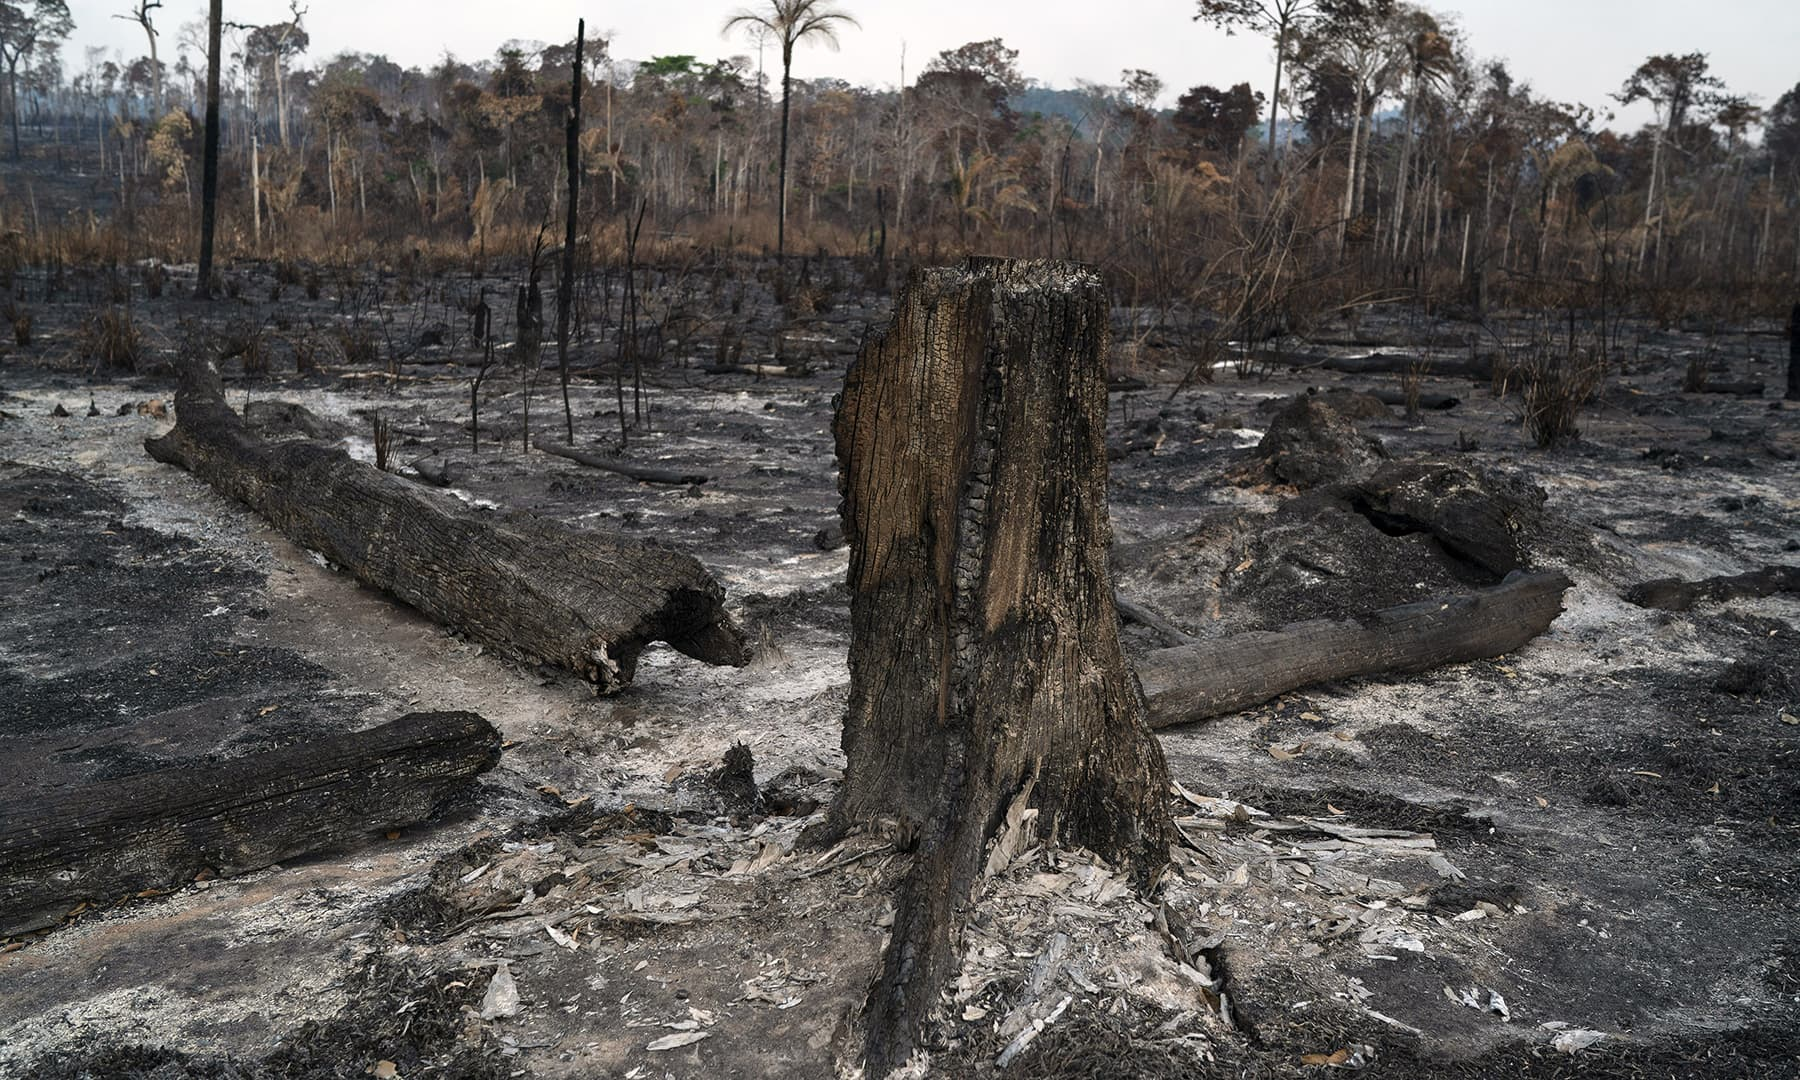 Trees are destroyed after a fire in the Alvorada da Amazonia region in Novo Progresso, Para state, Brazil, Sunday. — AP